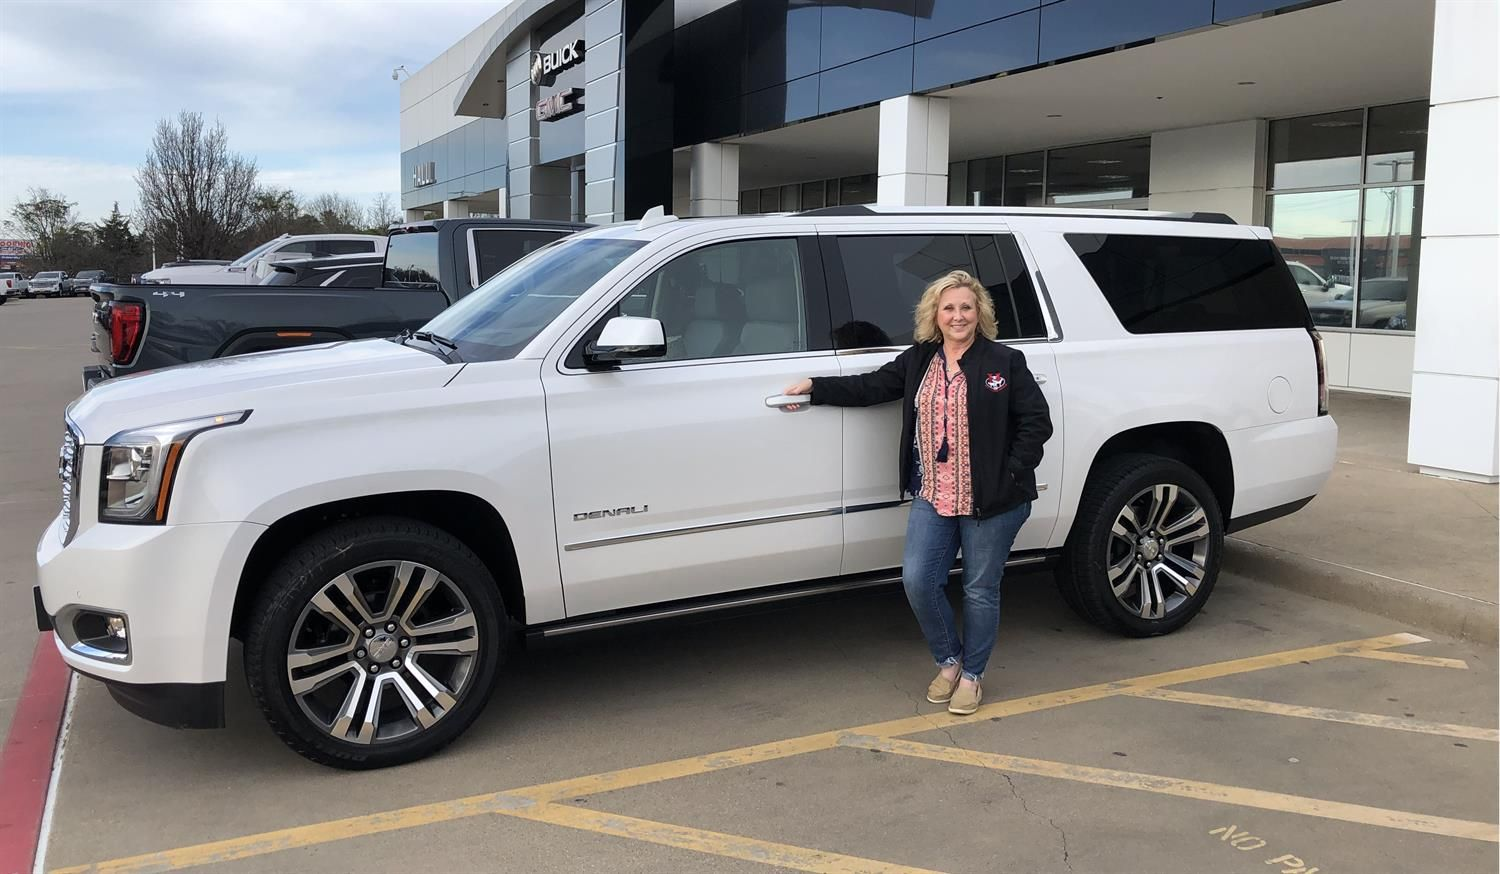 Melissa We Hope You Enjoy Your New 2020 Gmc Yukon Xl Congratulations And Best Wishes From Hall Buick Gmc And Luis In 2020 Gmc Yukon Xl Buick Gmc Gmc Yukon